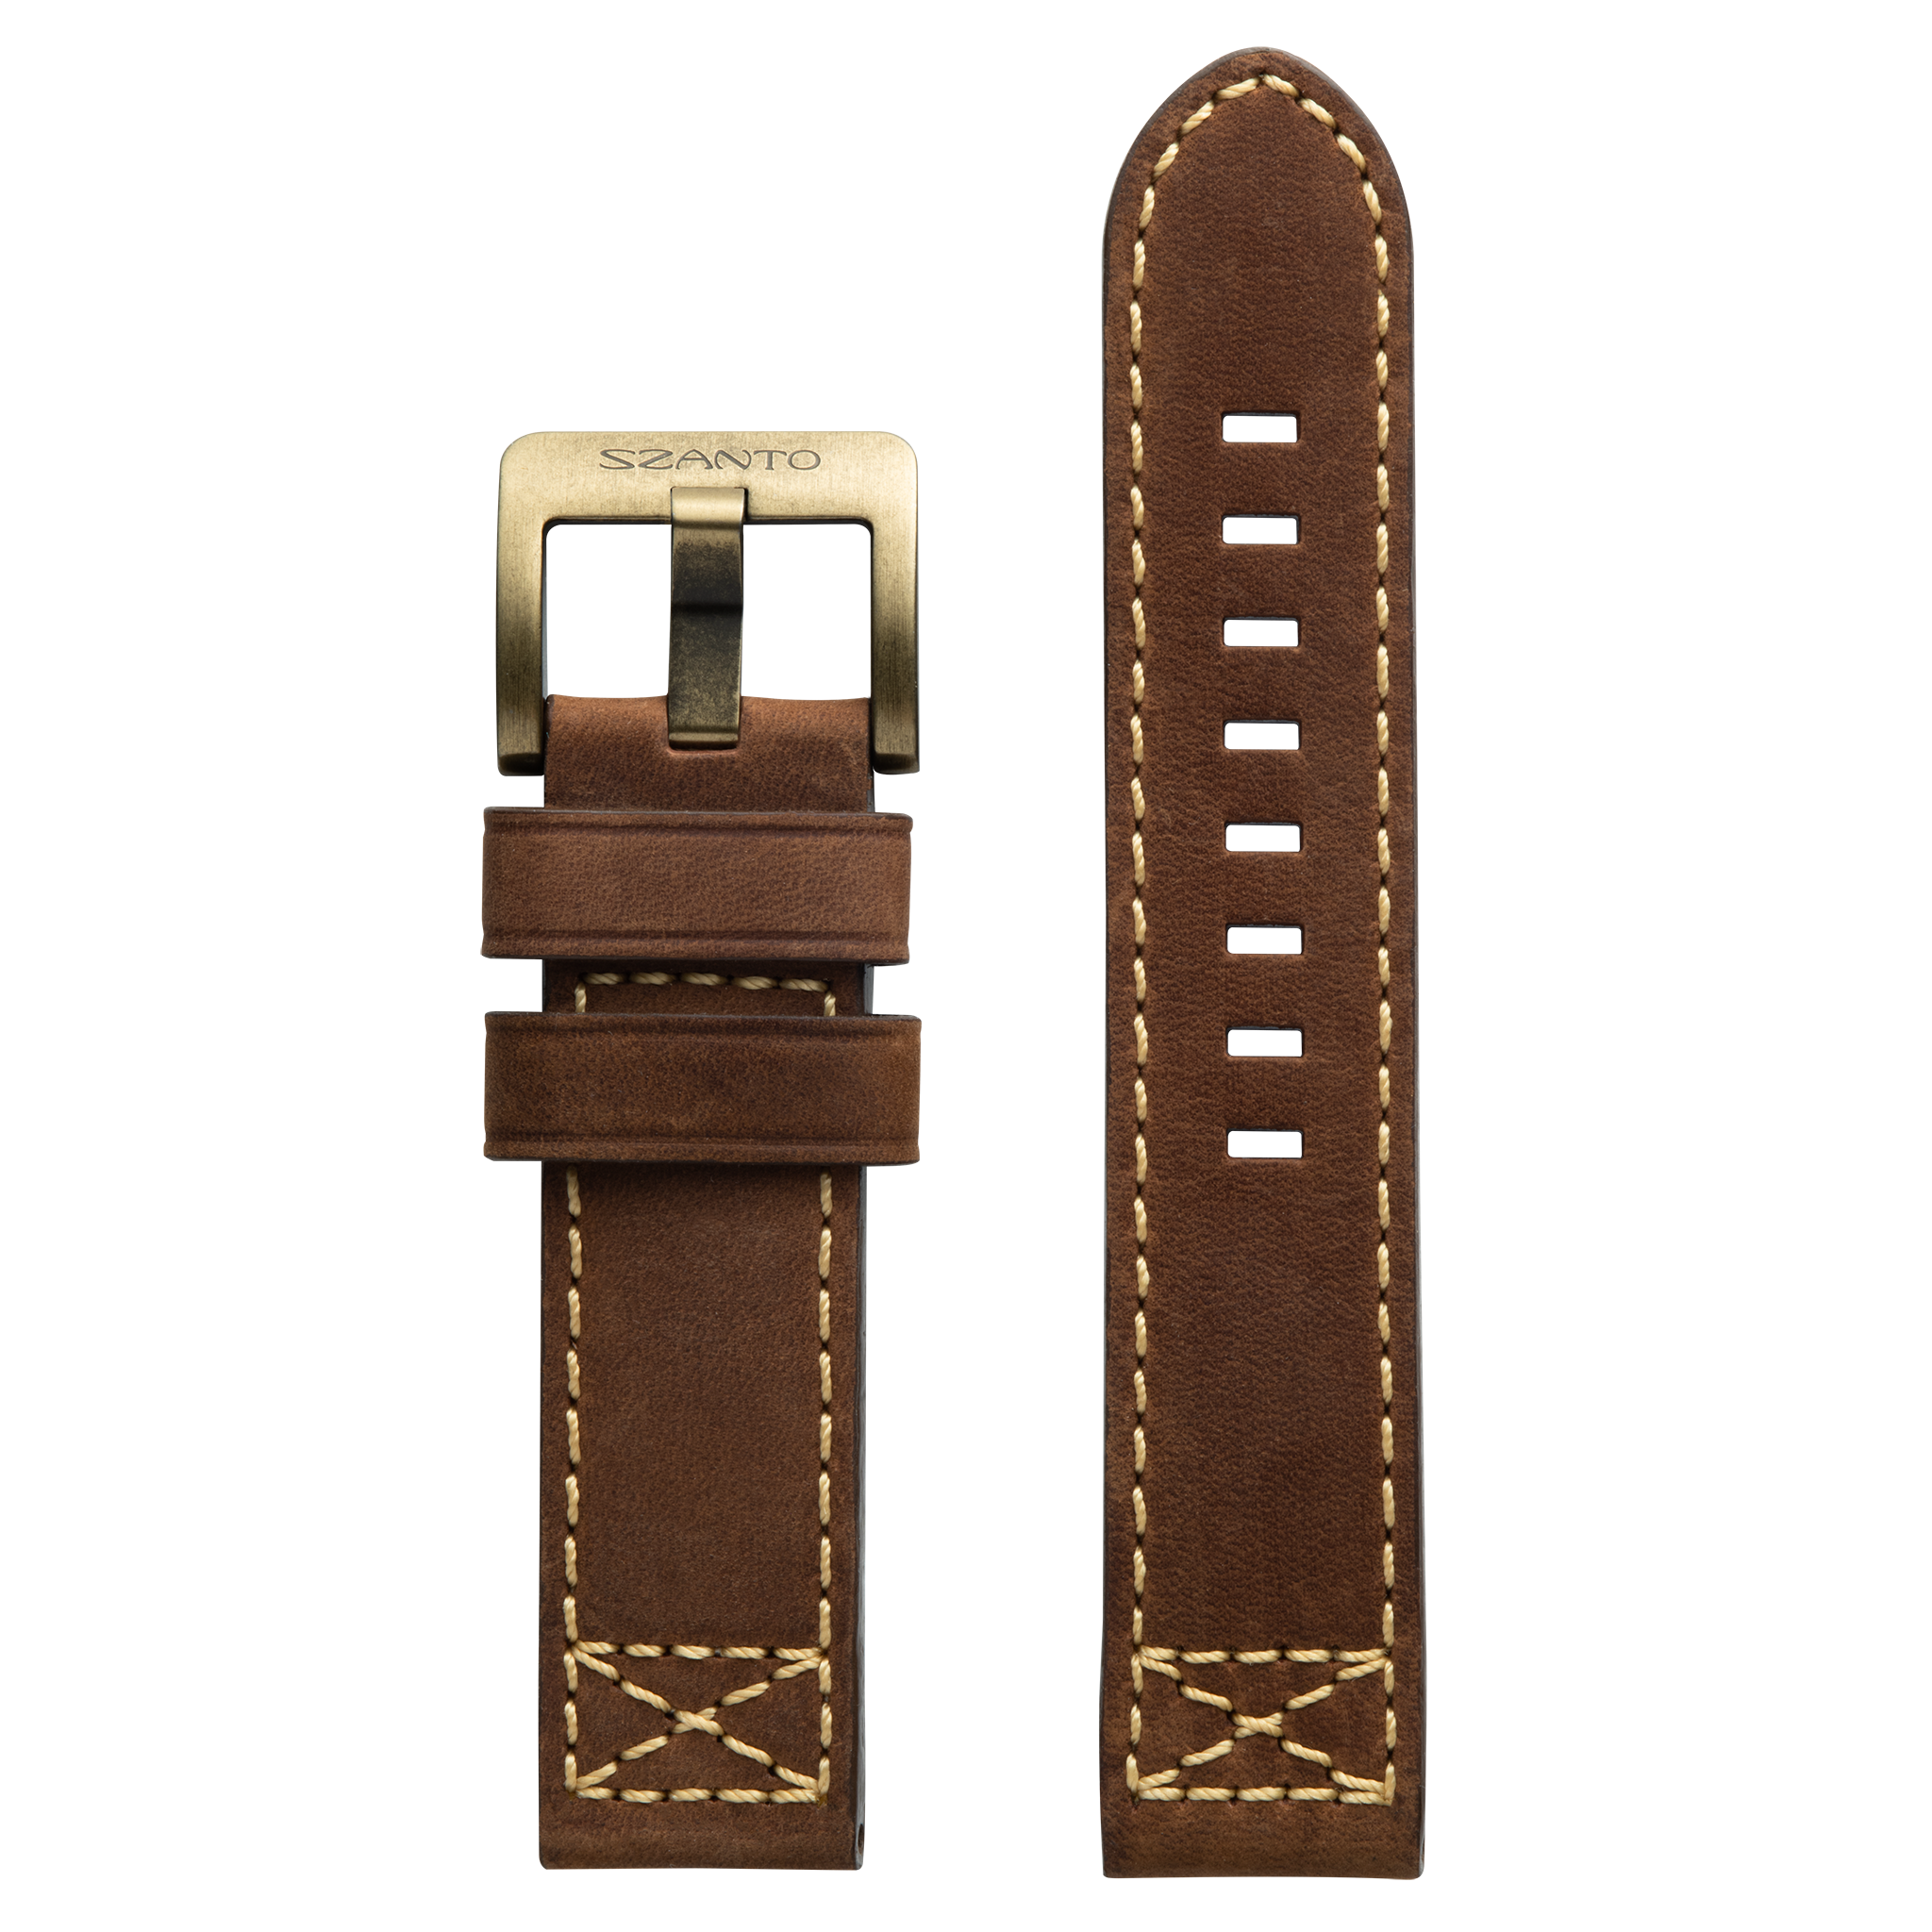 Szanto 22mm Brown Leather Strap/Antique Gold Buckle - 4000 Series